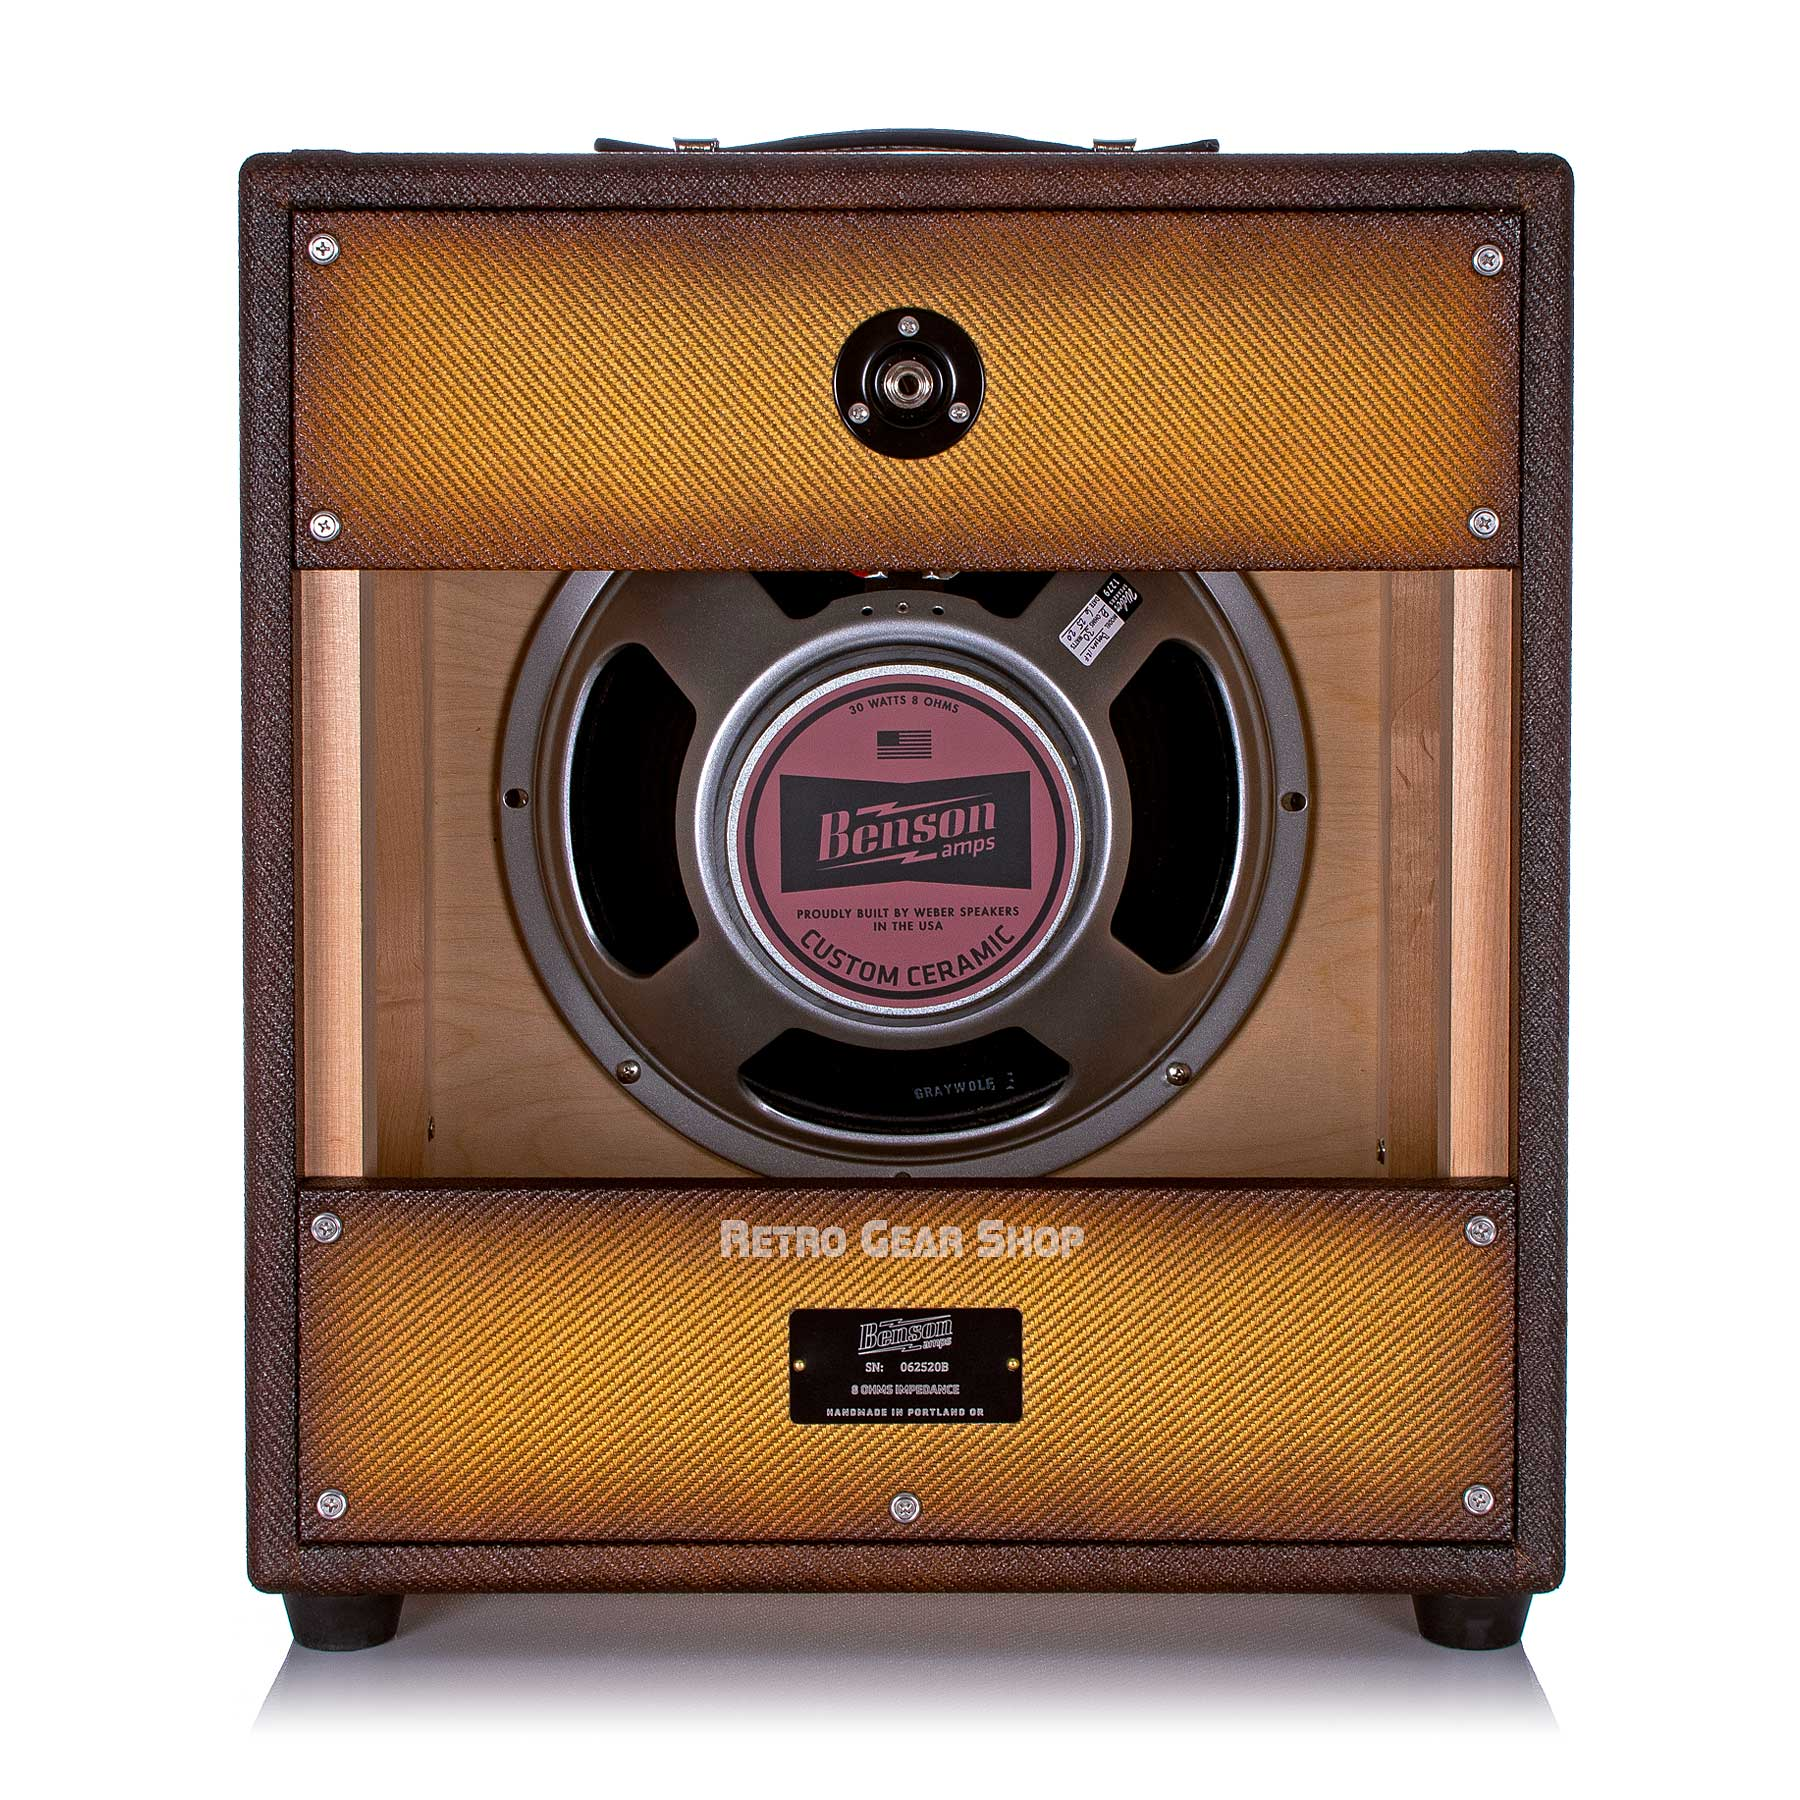 Benson Amps 1x12 Cab Bourbon Burst Oxblood Grill Rear Custom Ceramic Weber Speaker